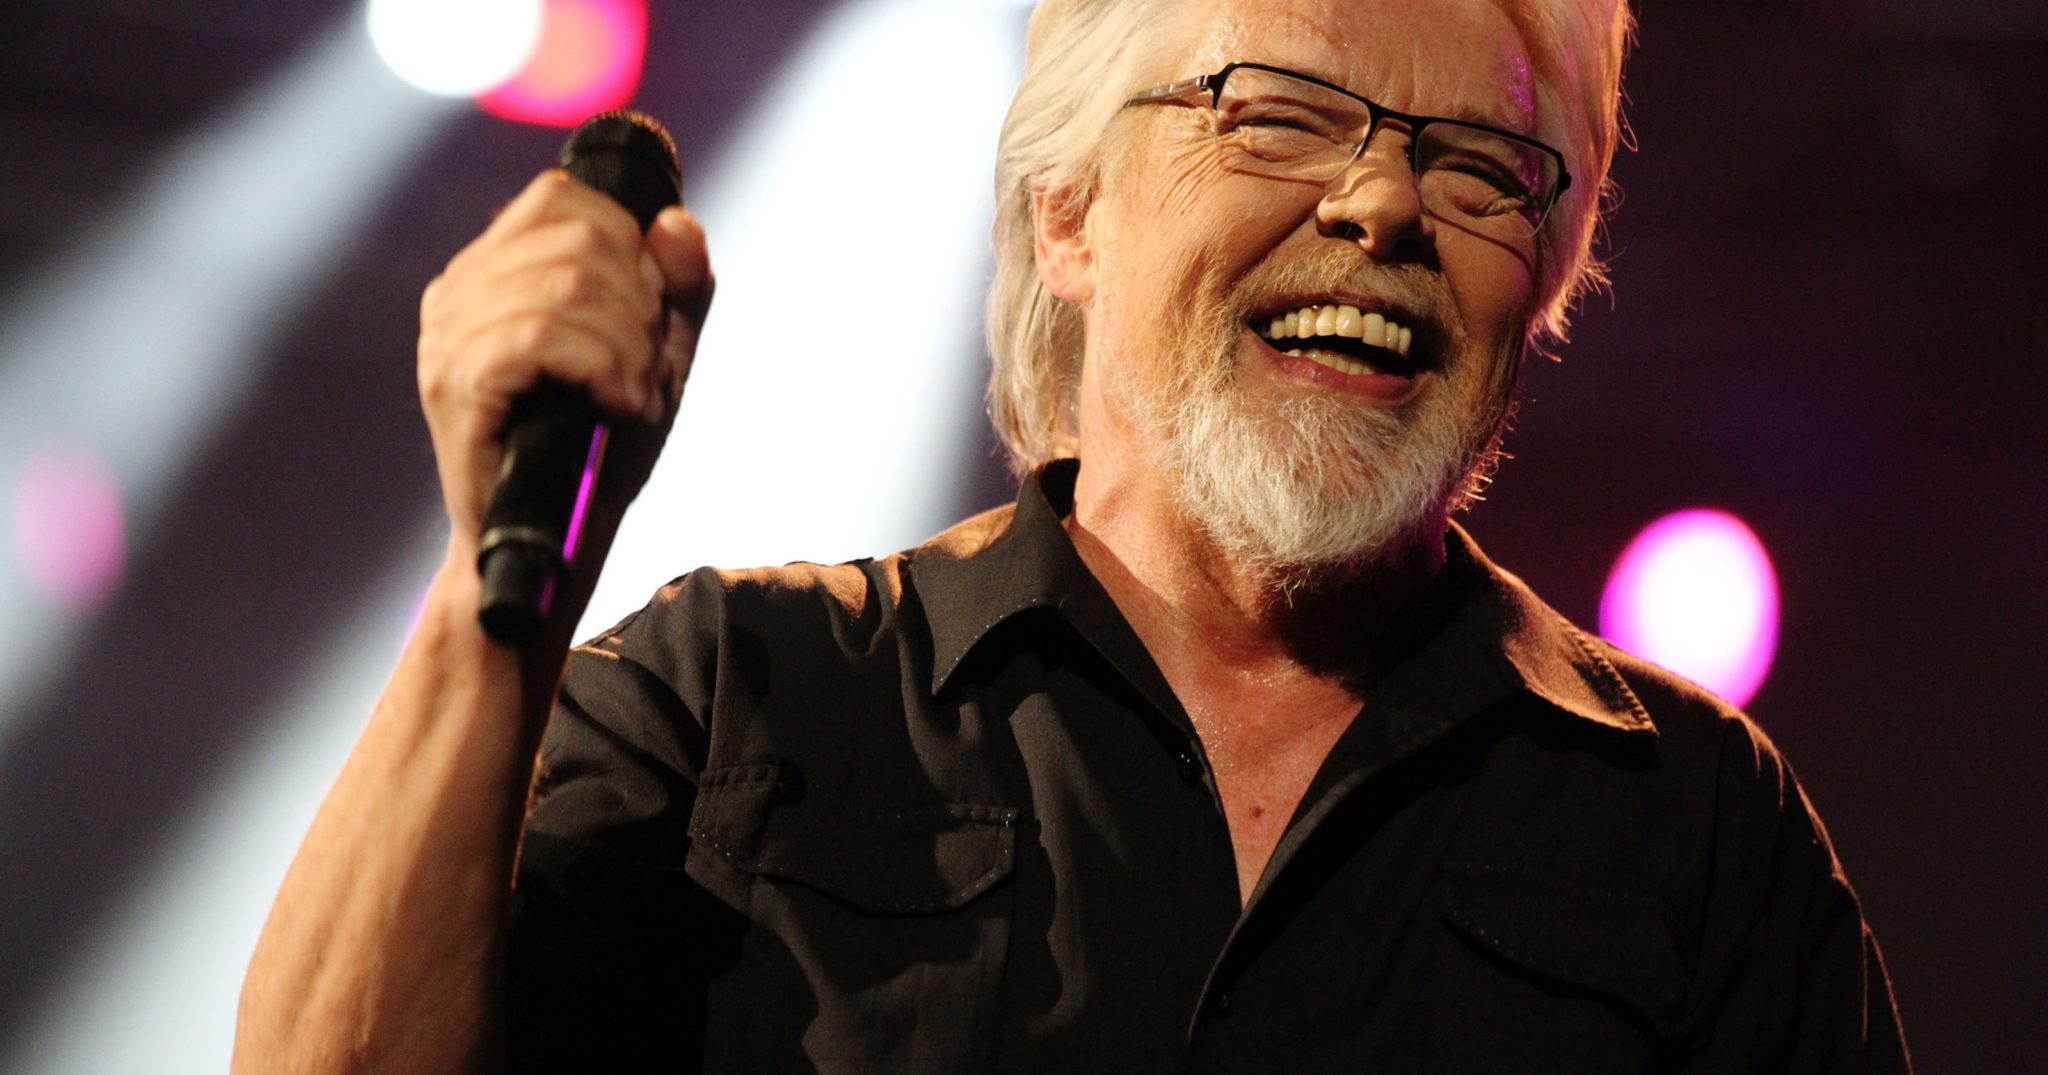 Is Bob Seger planning to retire later this year?